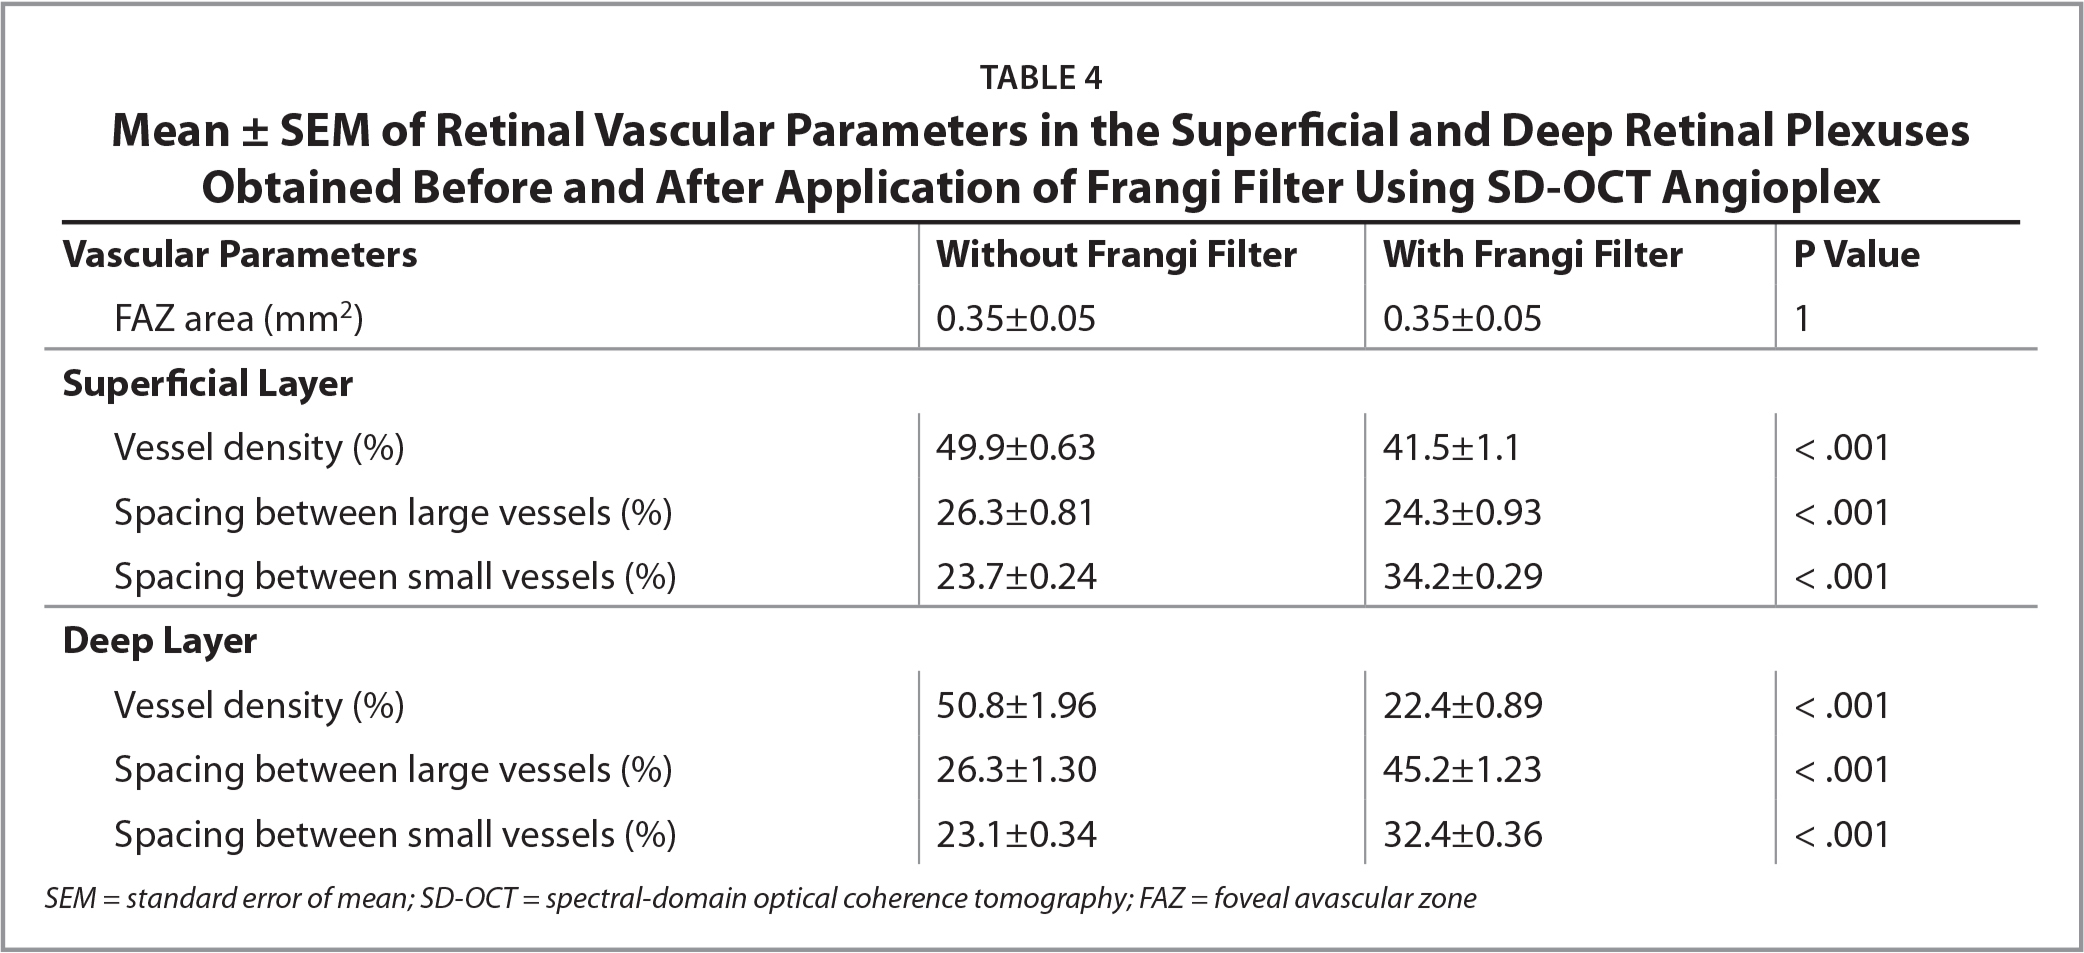 Mean ± SEM of Retinal Vascular Parameters in the Superficial and Deep Retinal Plexuses Obtained Before and After Application of Frangi Filter Using SD-OCT Angioplex